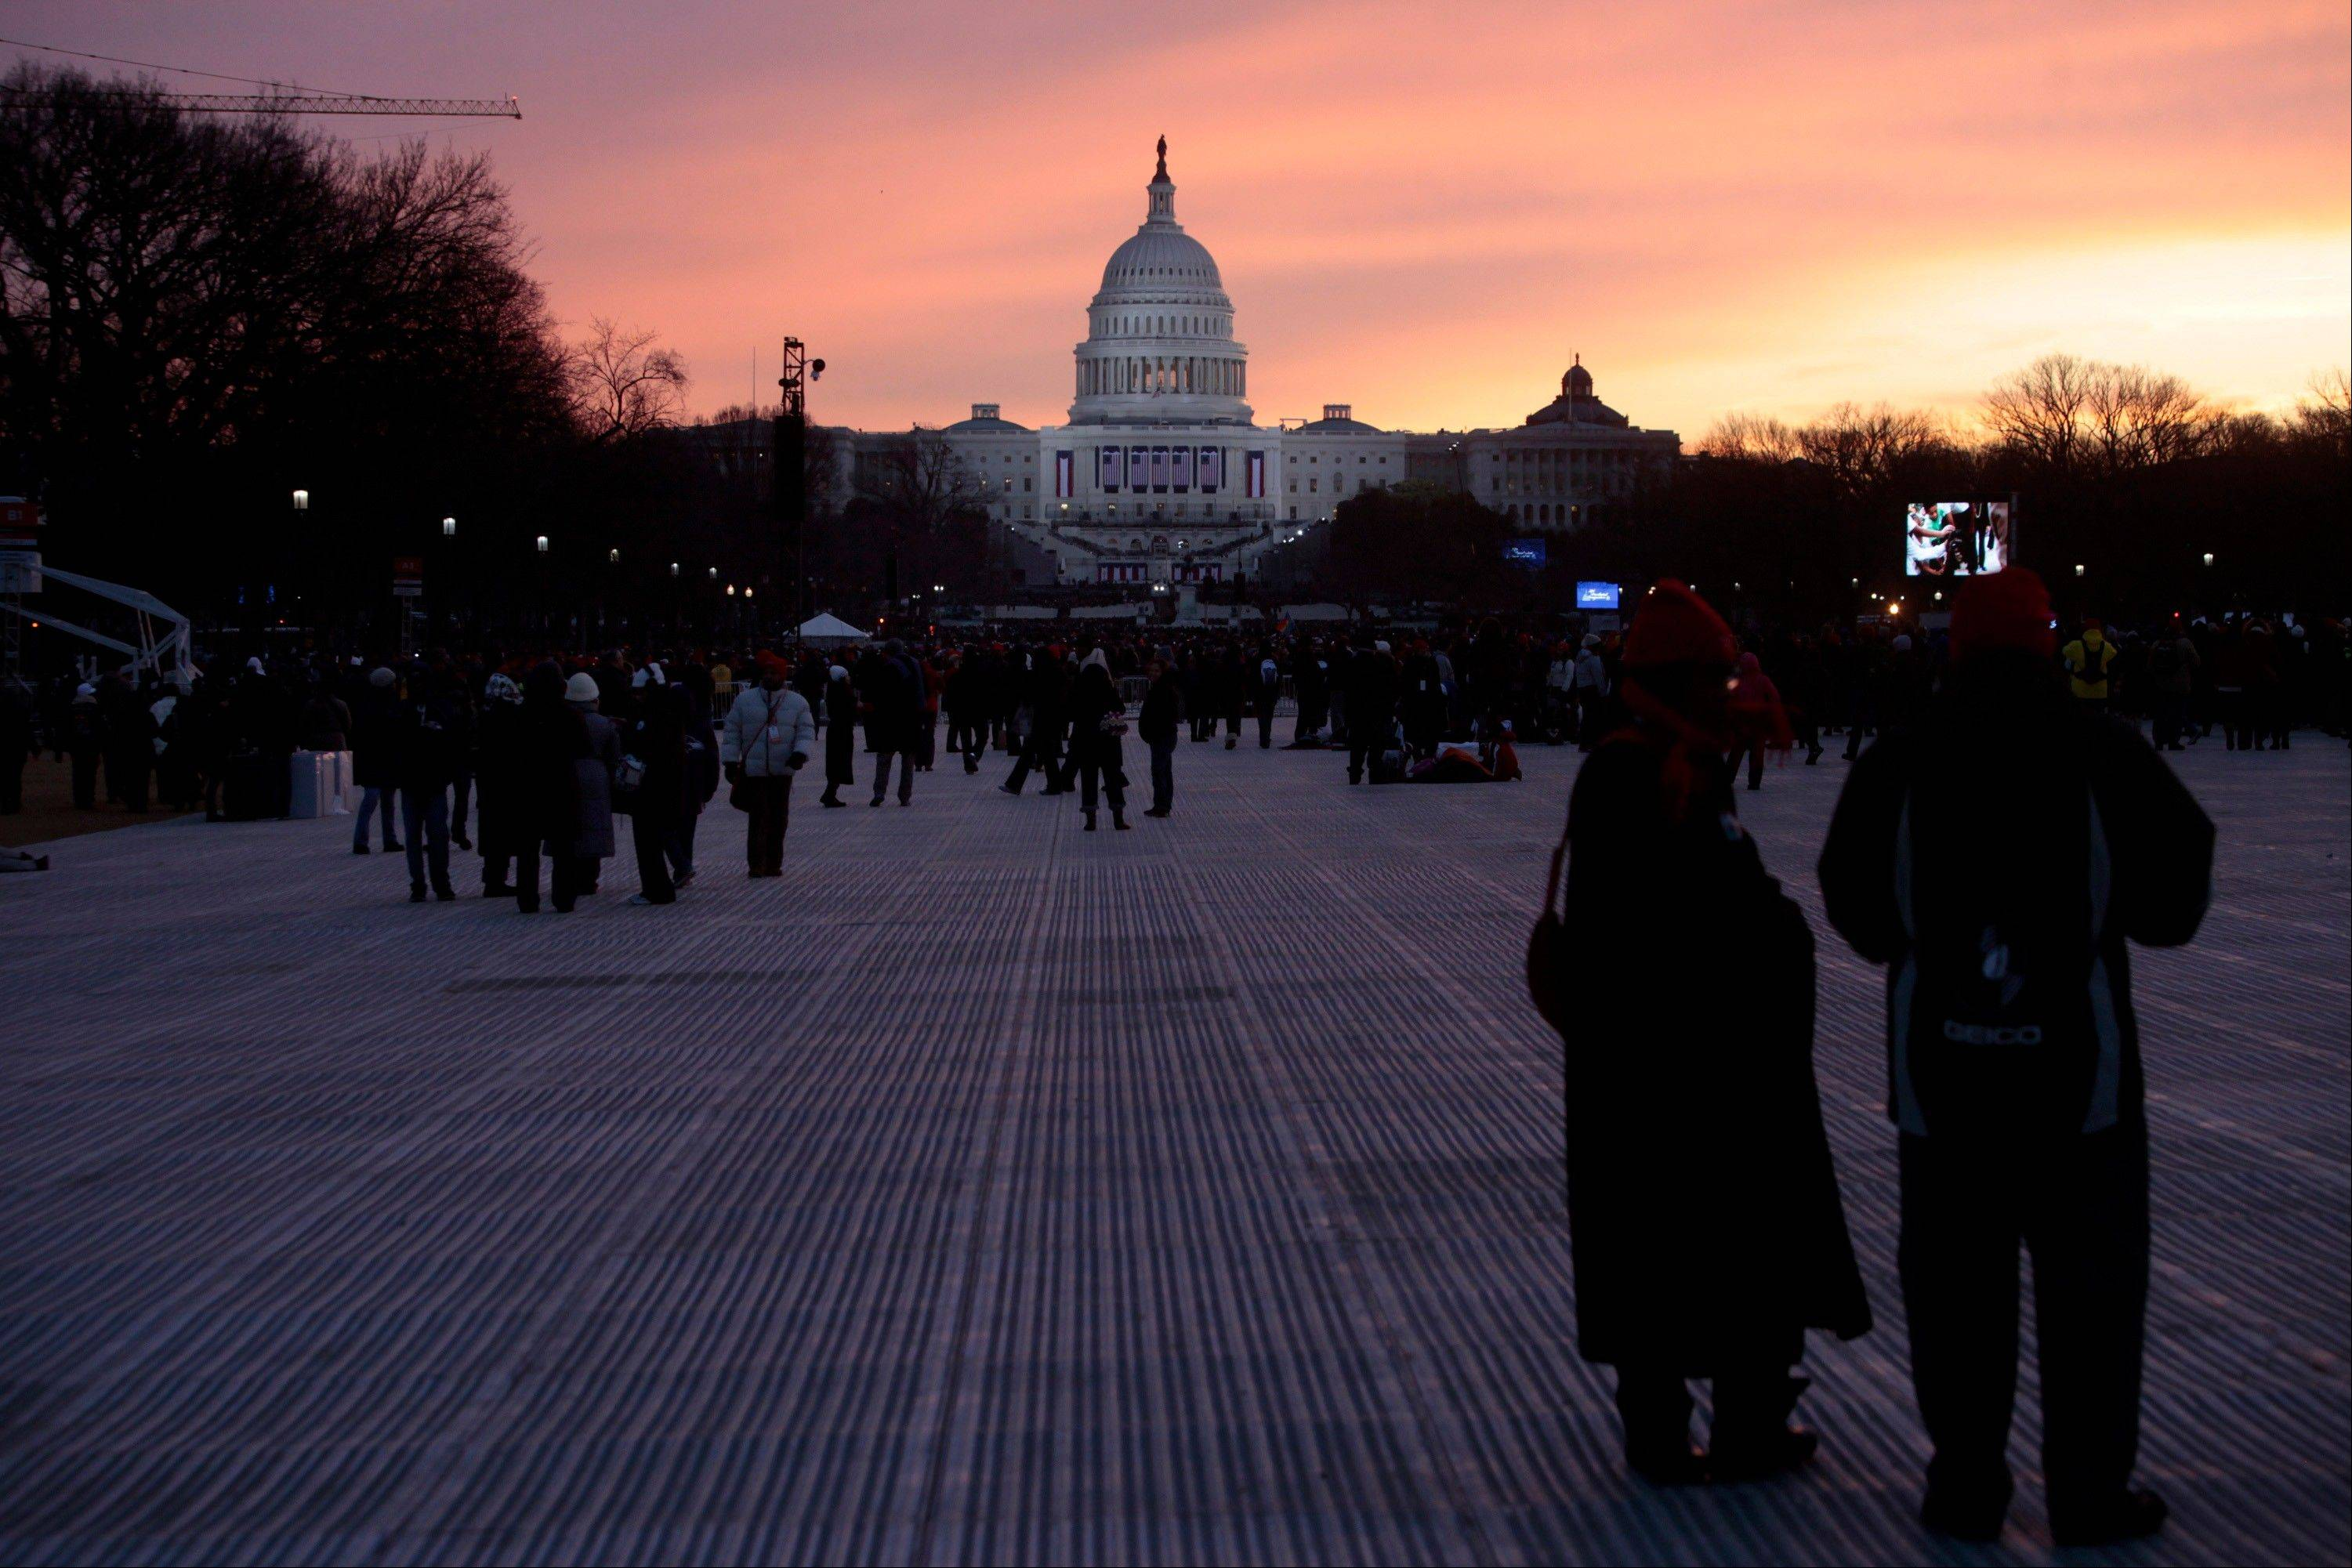 The sun rises as attendees gather in front of the Capitol building before the start of the U.S. presidential inauguration in Washington, D.C., U.S., on Monday, Jan. 21, 2013.